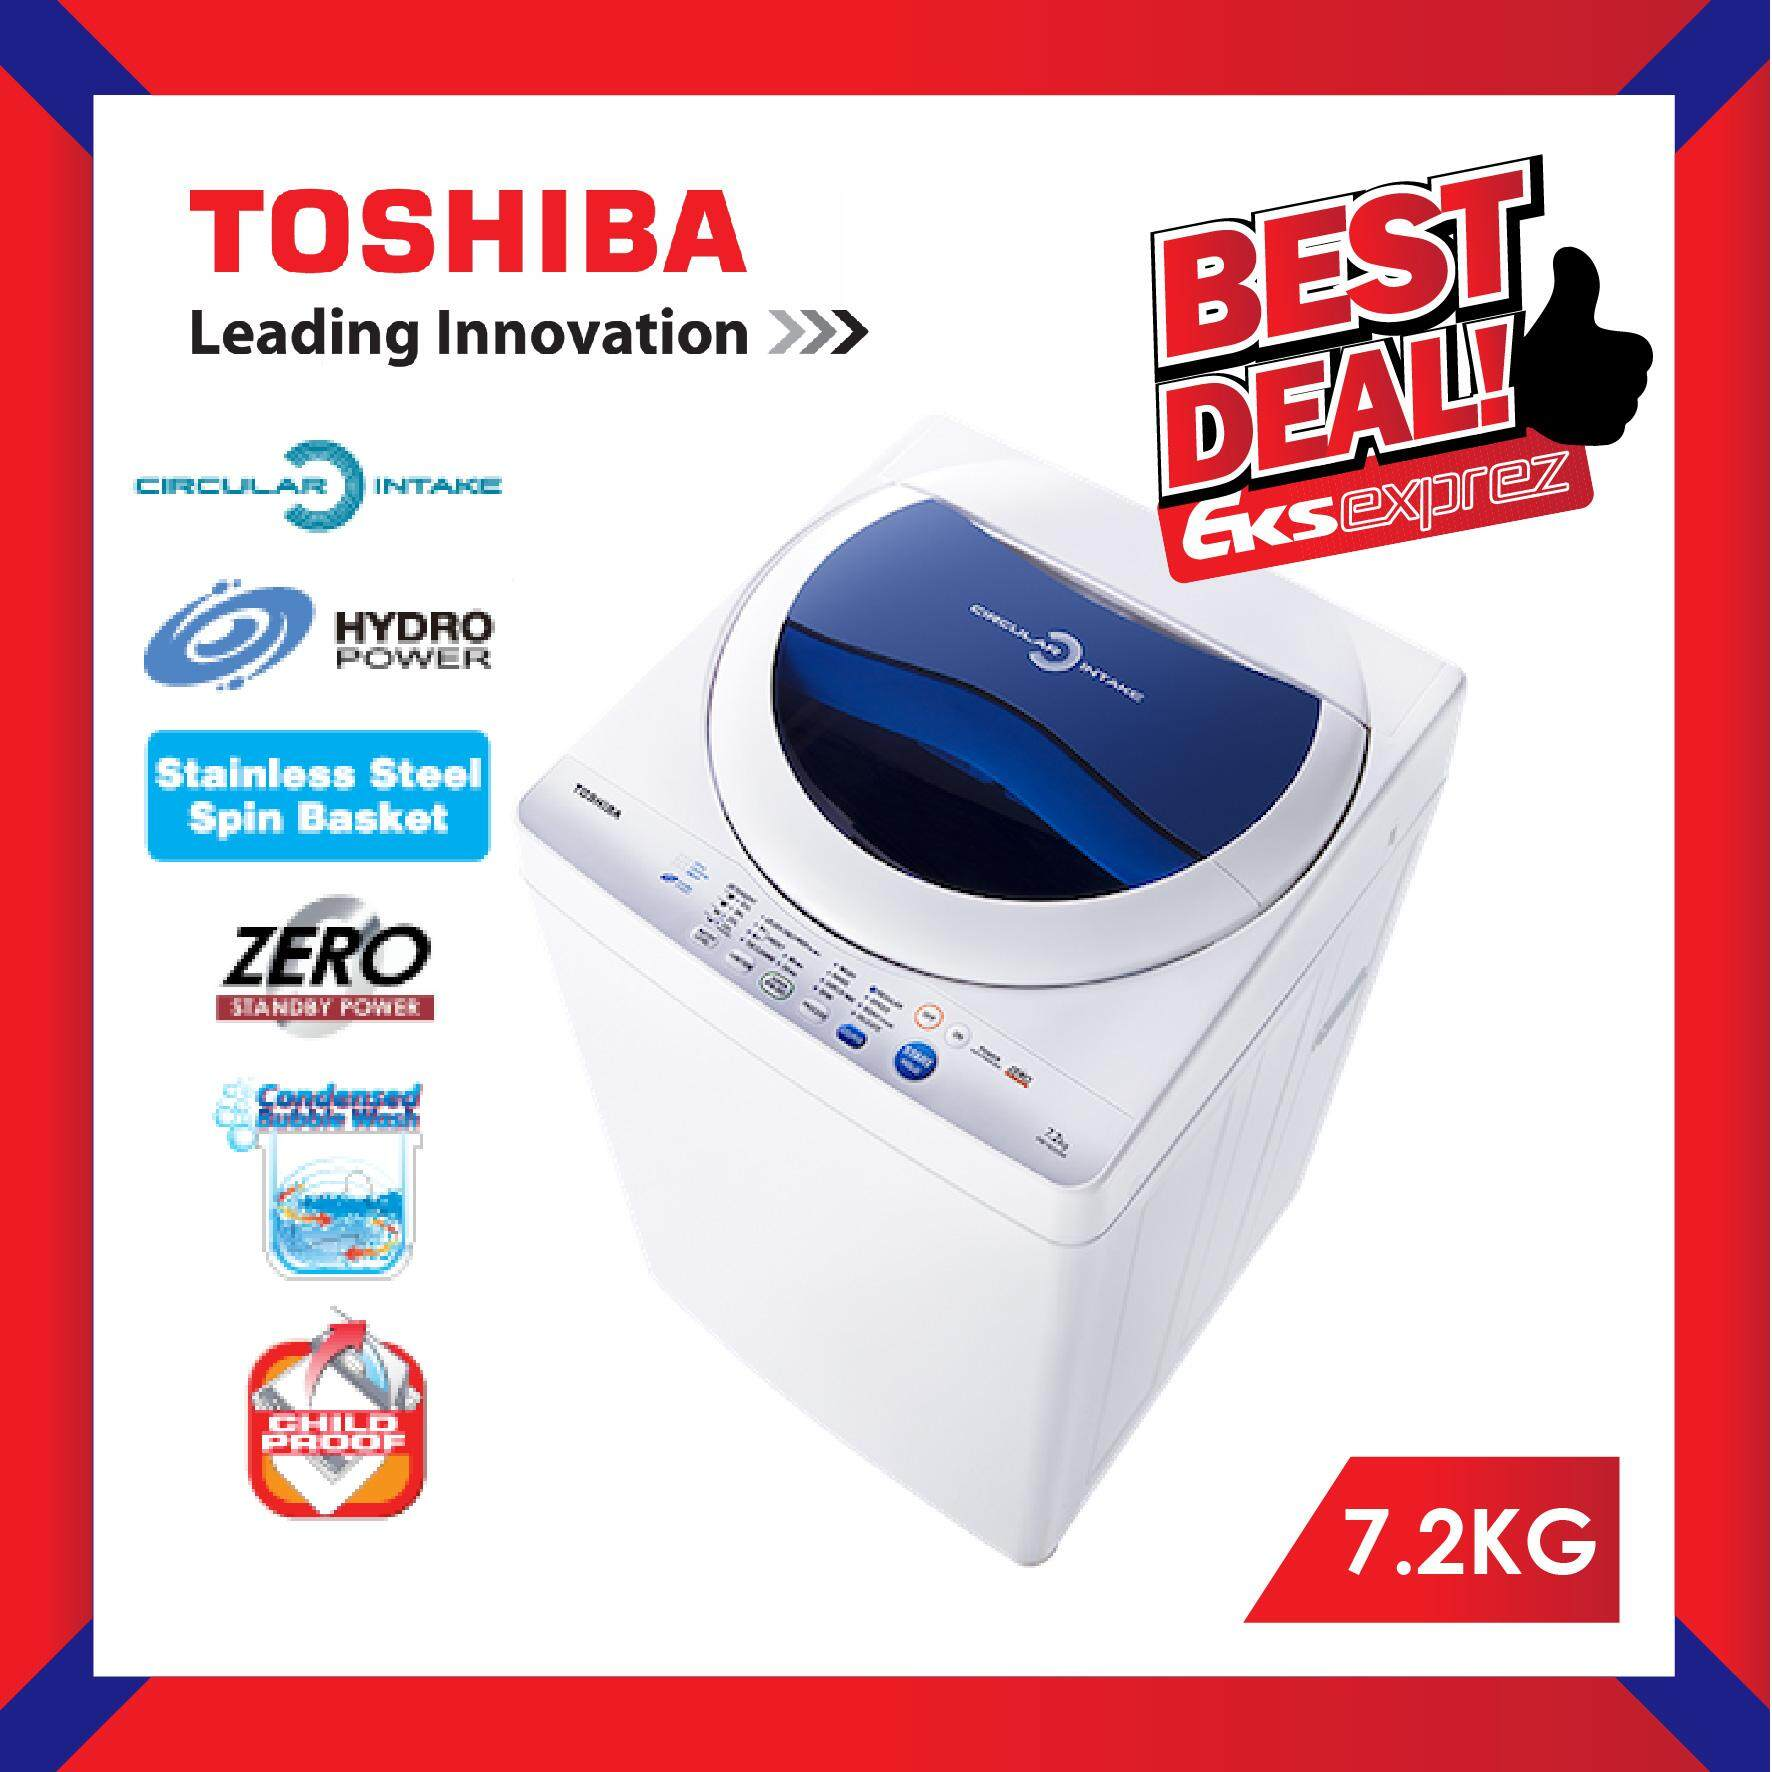 Toshiba AW-F820SM (WB) 7.2 KG Non Inverter Fully Auto Top Load Washing Machine with Circular Intake